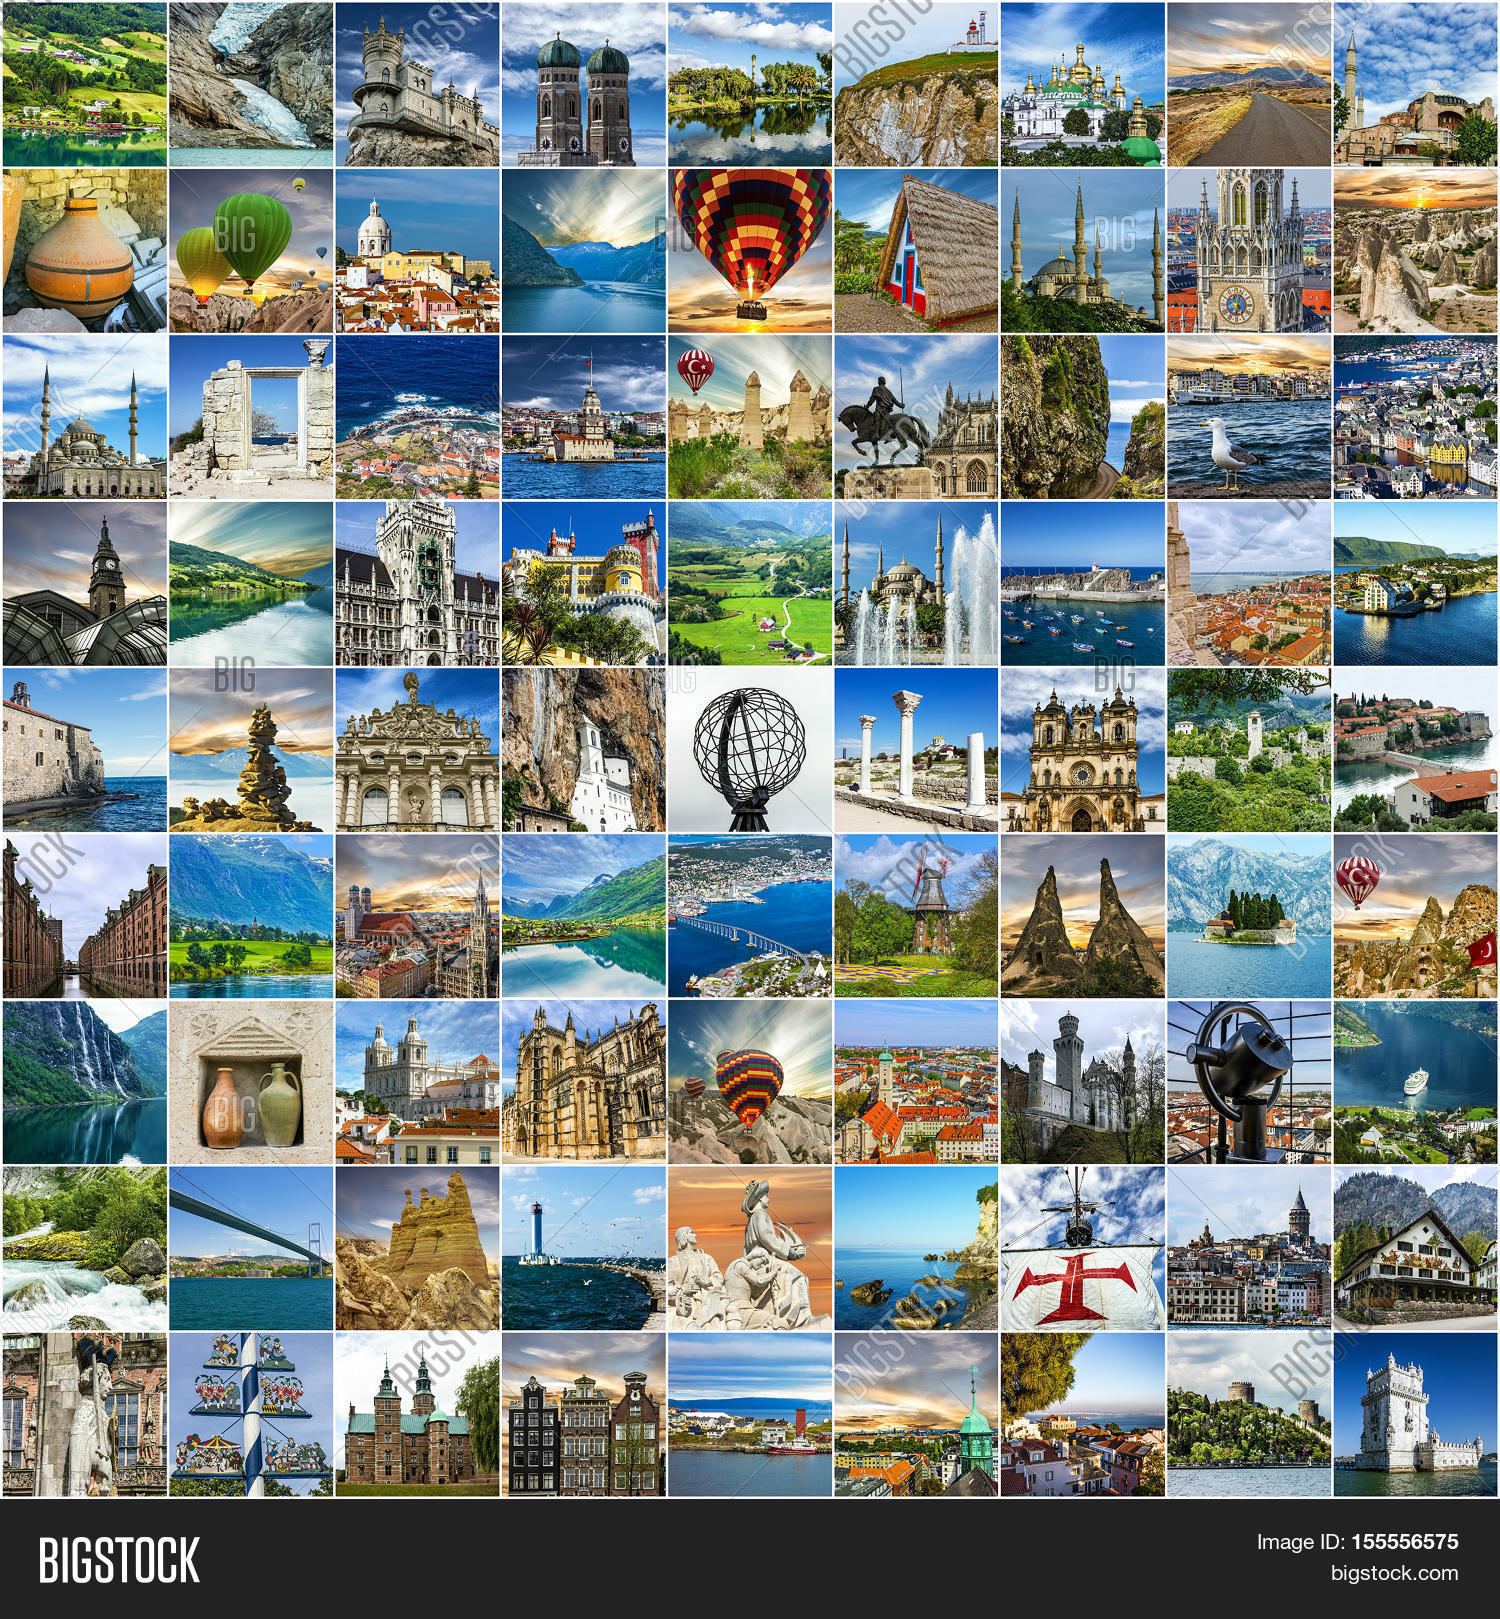 Travel Collage Many Image Photo Free Trial Bigstock